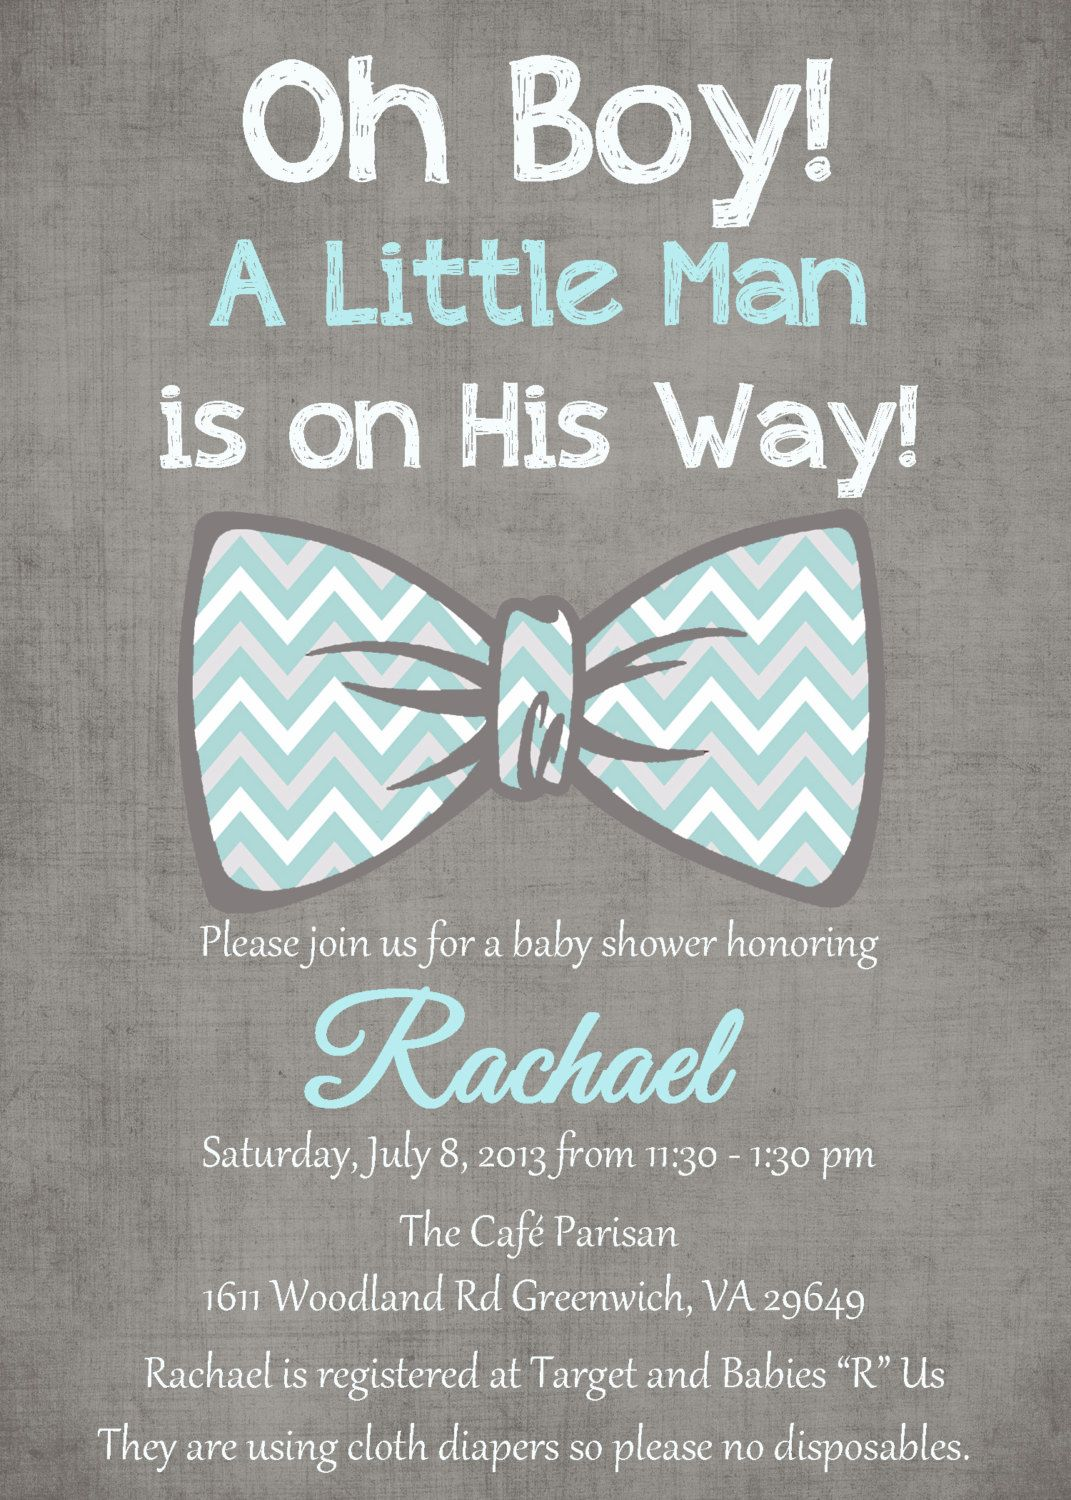 gray and white baby shower | Oh Boy Little man teal blue gray white ...